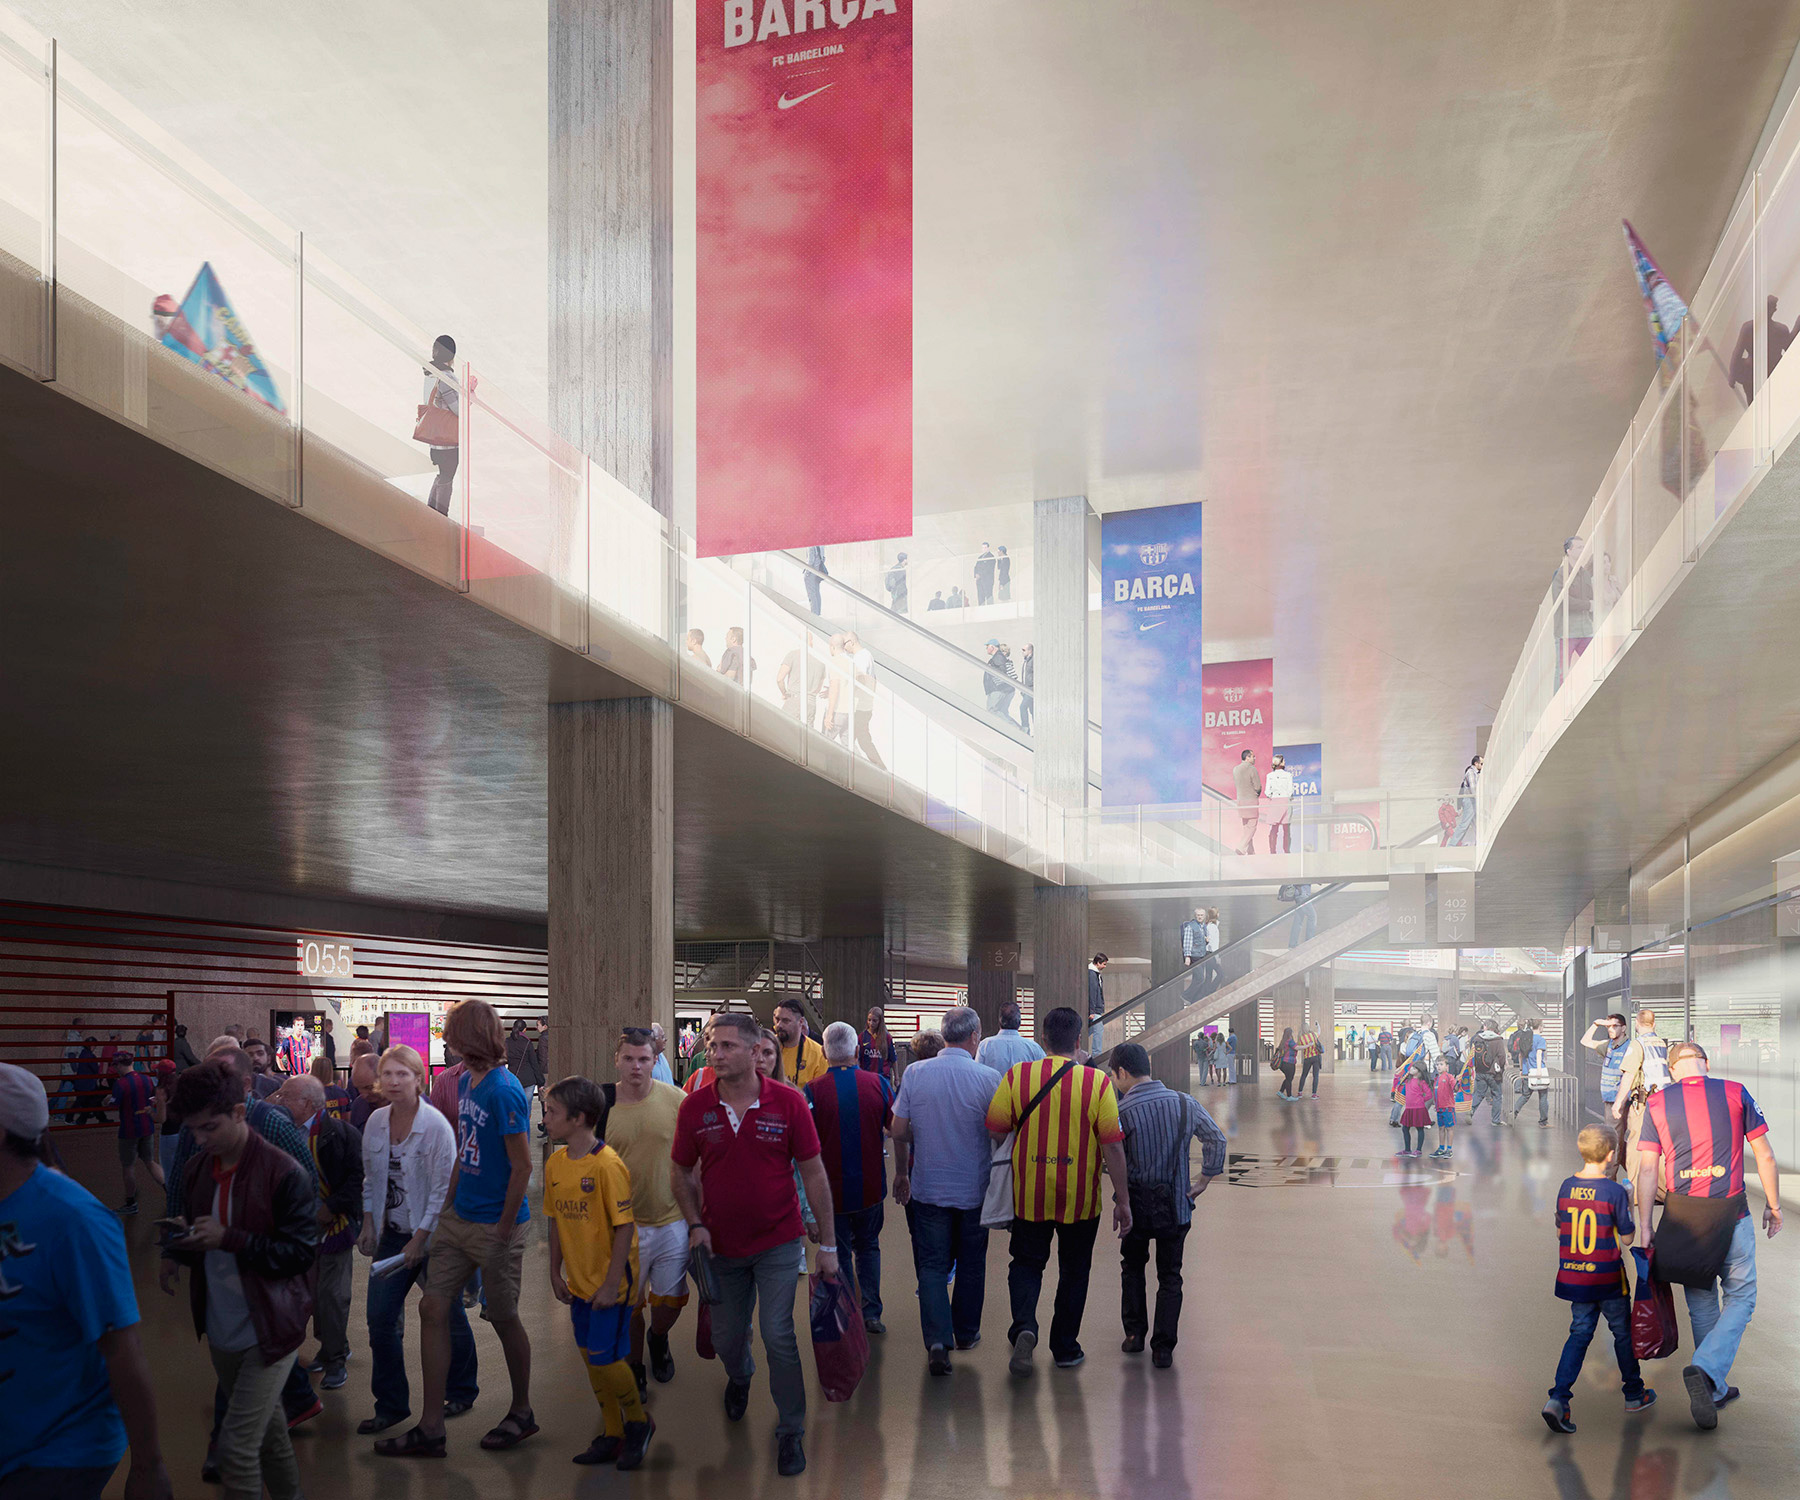 interior FCBarcelona stadium render